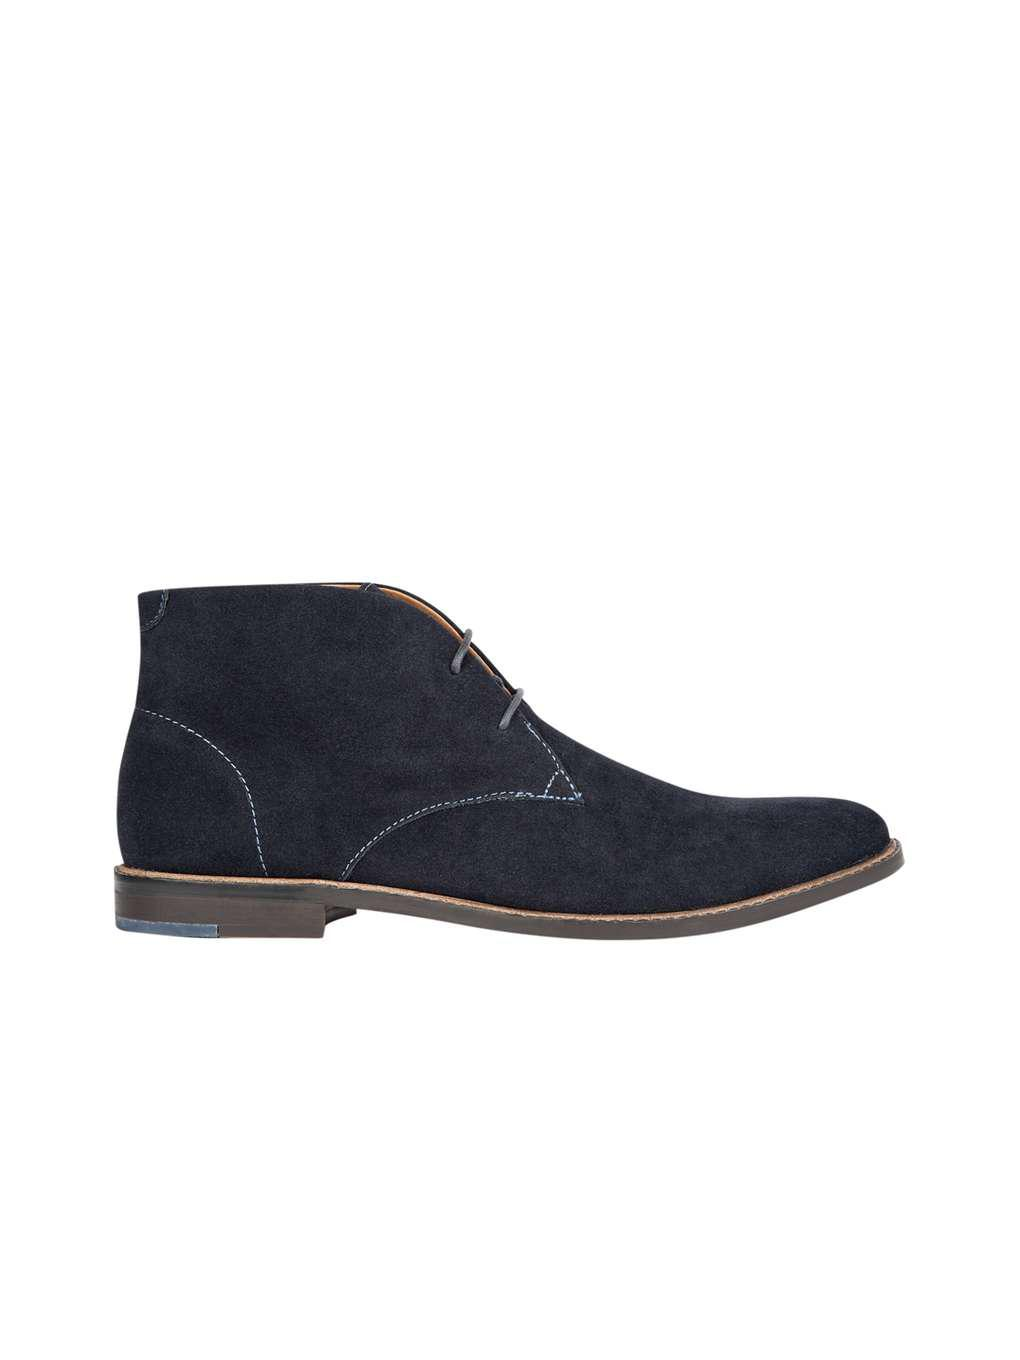 Navy suede 'Seth' chukka boots sale 2014 newest clearance latest collections outlet store sale online DMrbGV